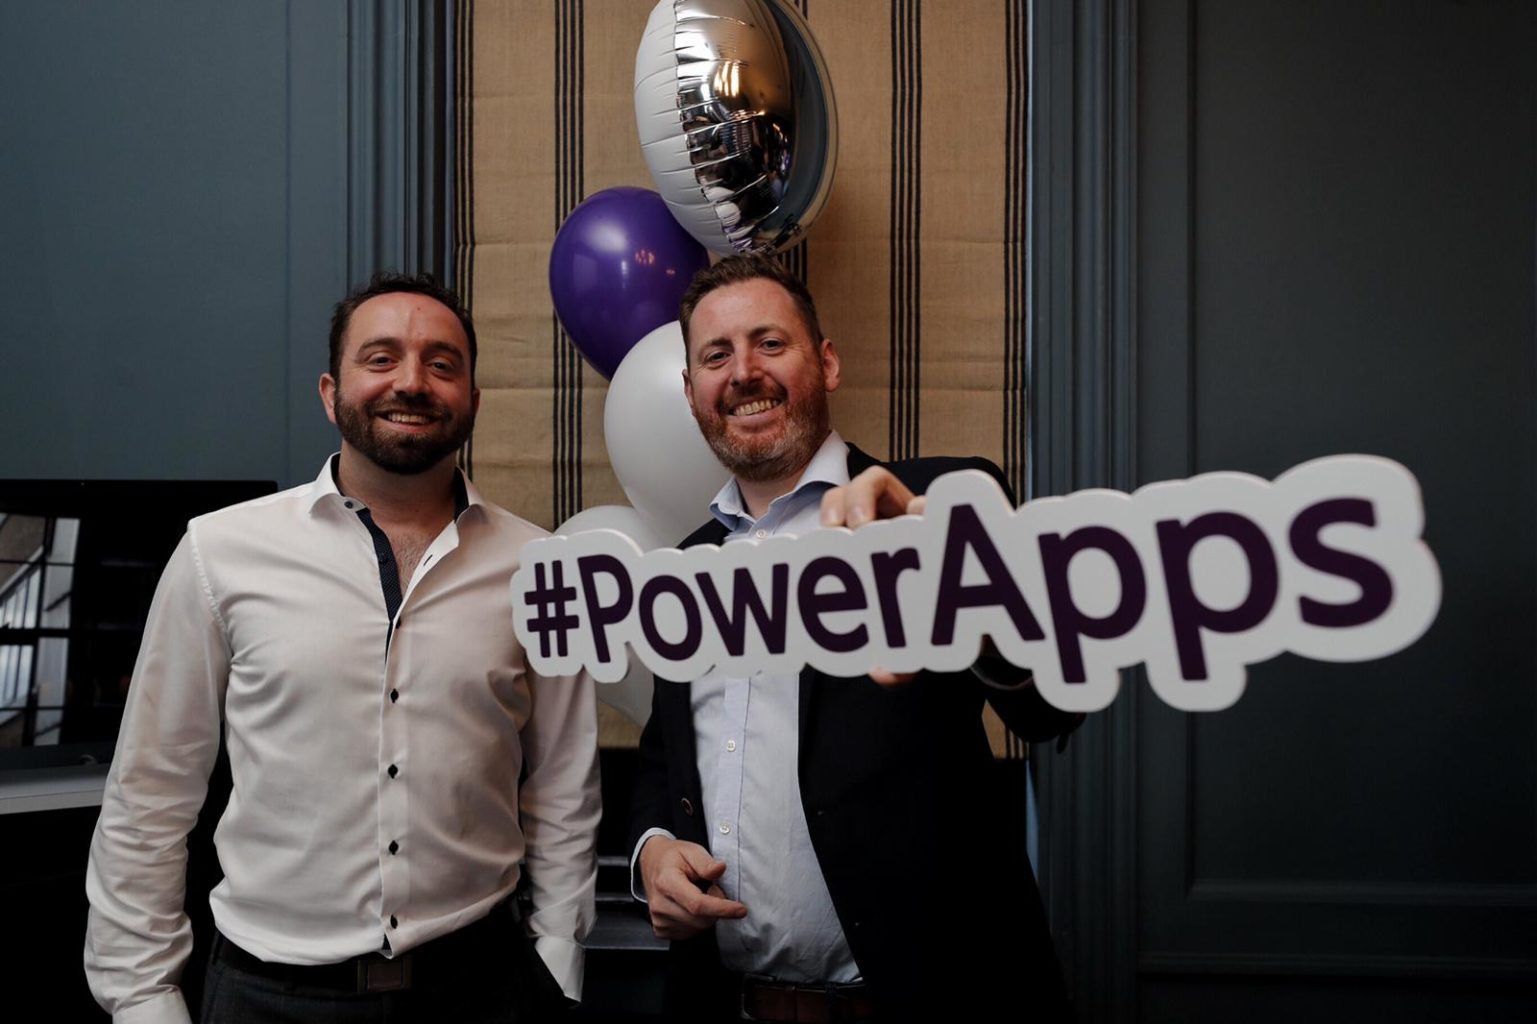 David Arnold & Paul Gilbride holding a PowerApps sign posing for the camera